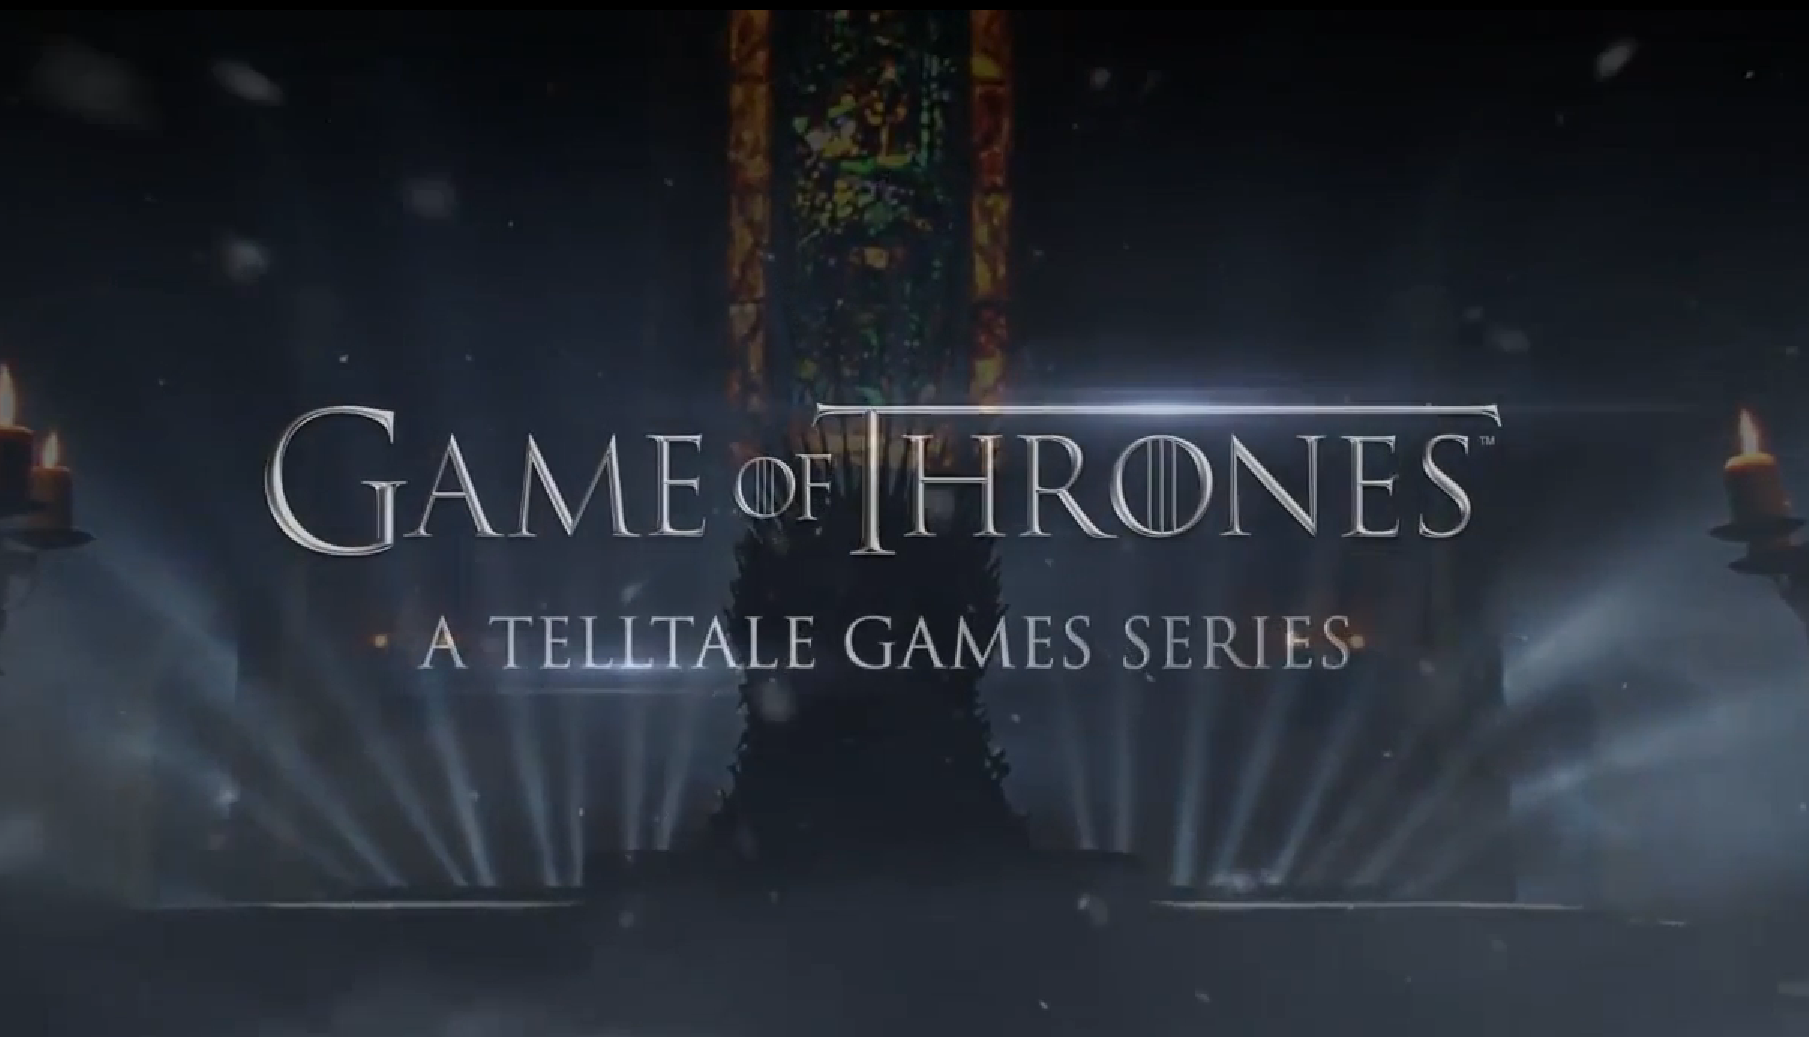 Telltale's Game of Thrones will feature five playable characters from the same family